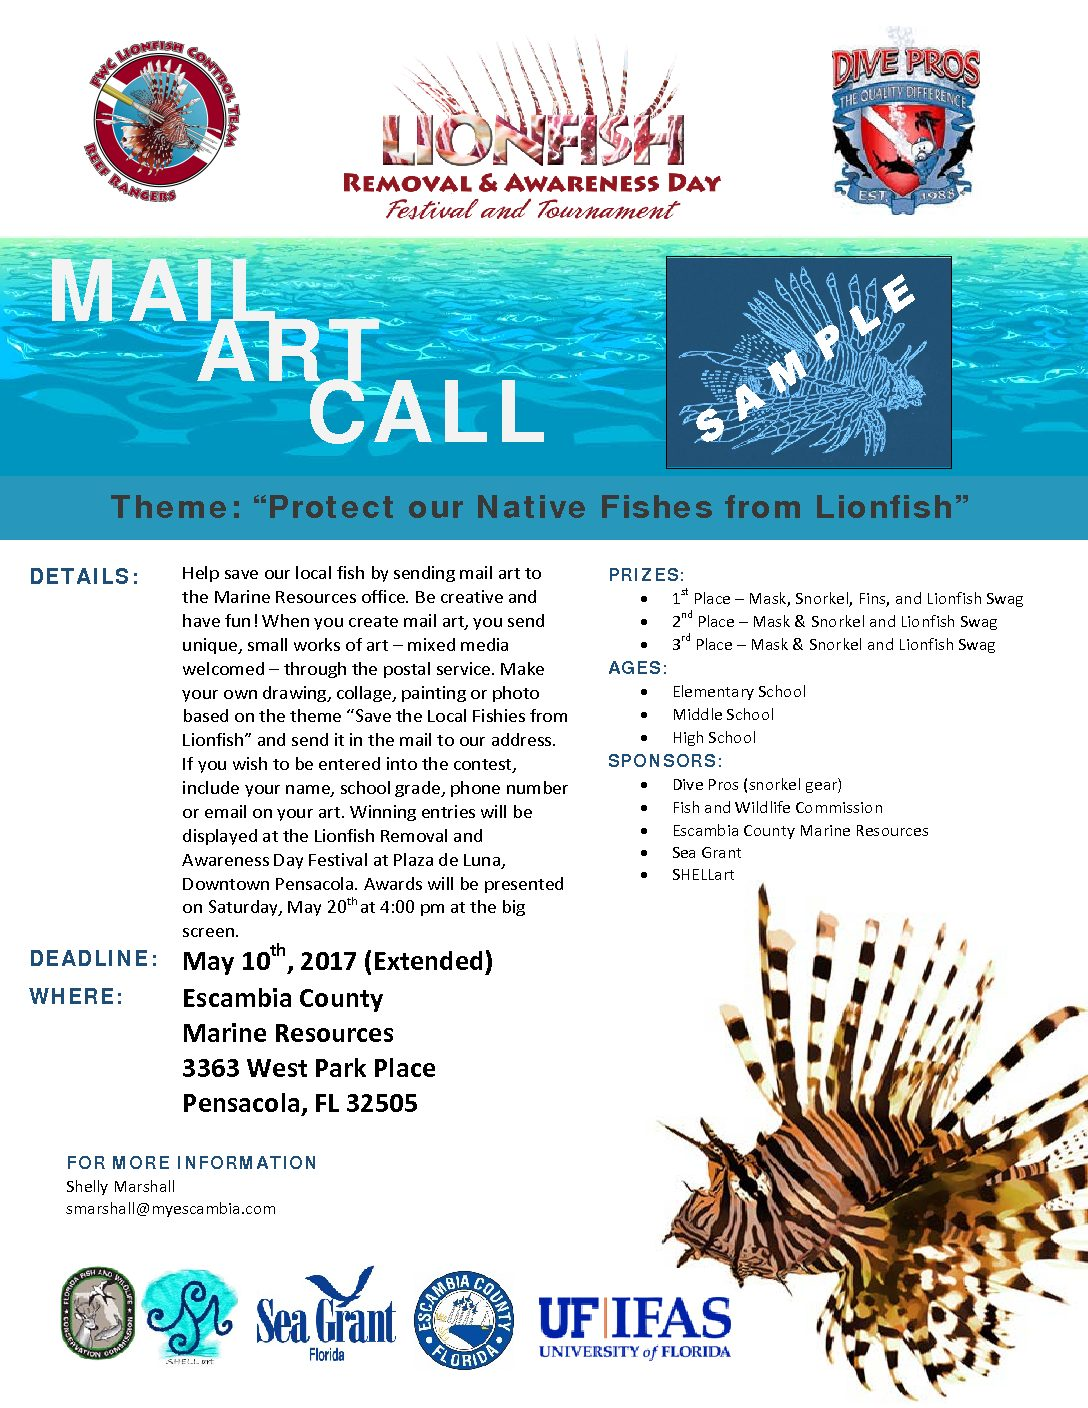 Call for Lionfish art